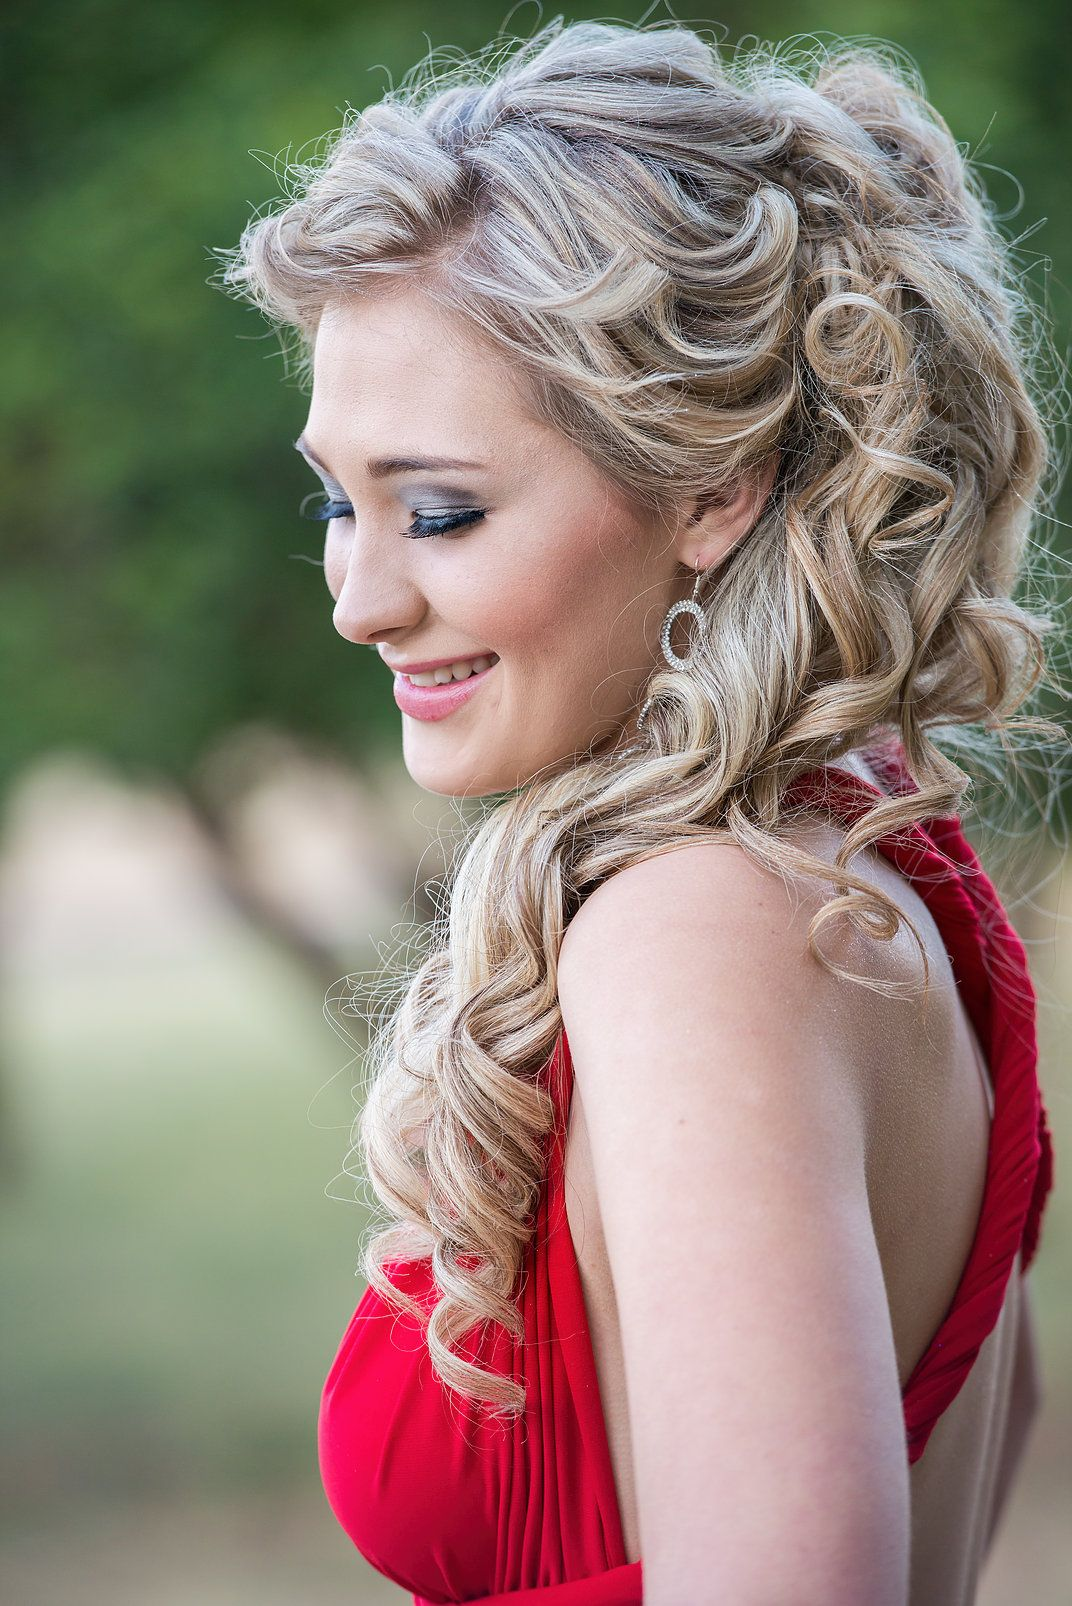 I Do On Site Matric Farwell Hair And Makeup Here Is A Collection Of Some Of Our Previous Matric Farewell Clients In With Images Braided Hairstyles Hair Styles Hair Makeup